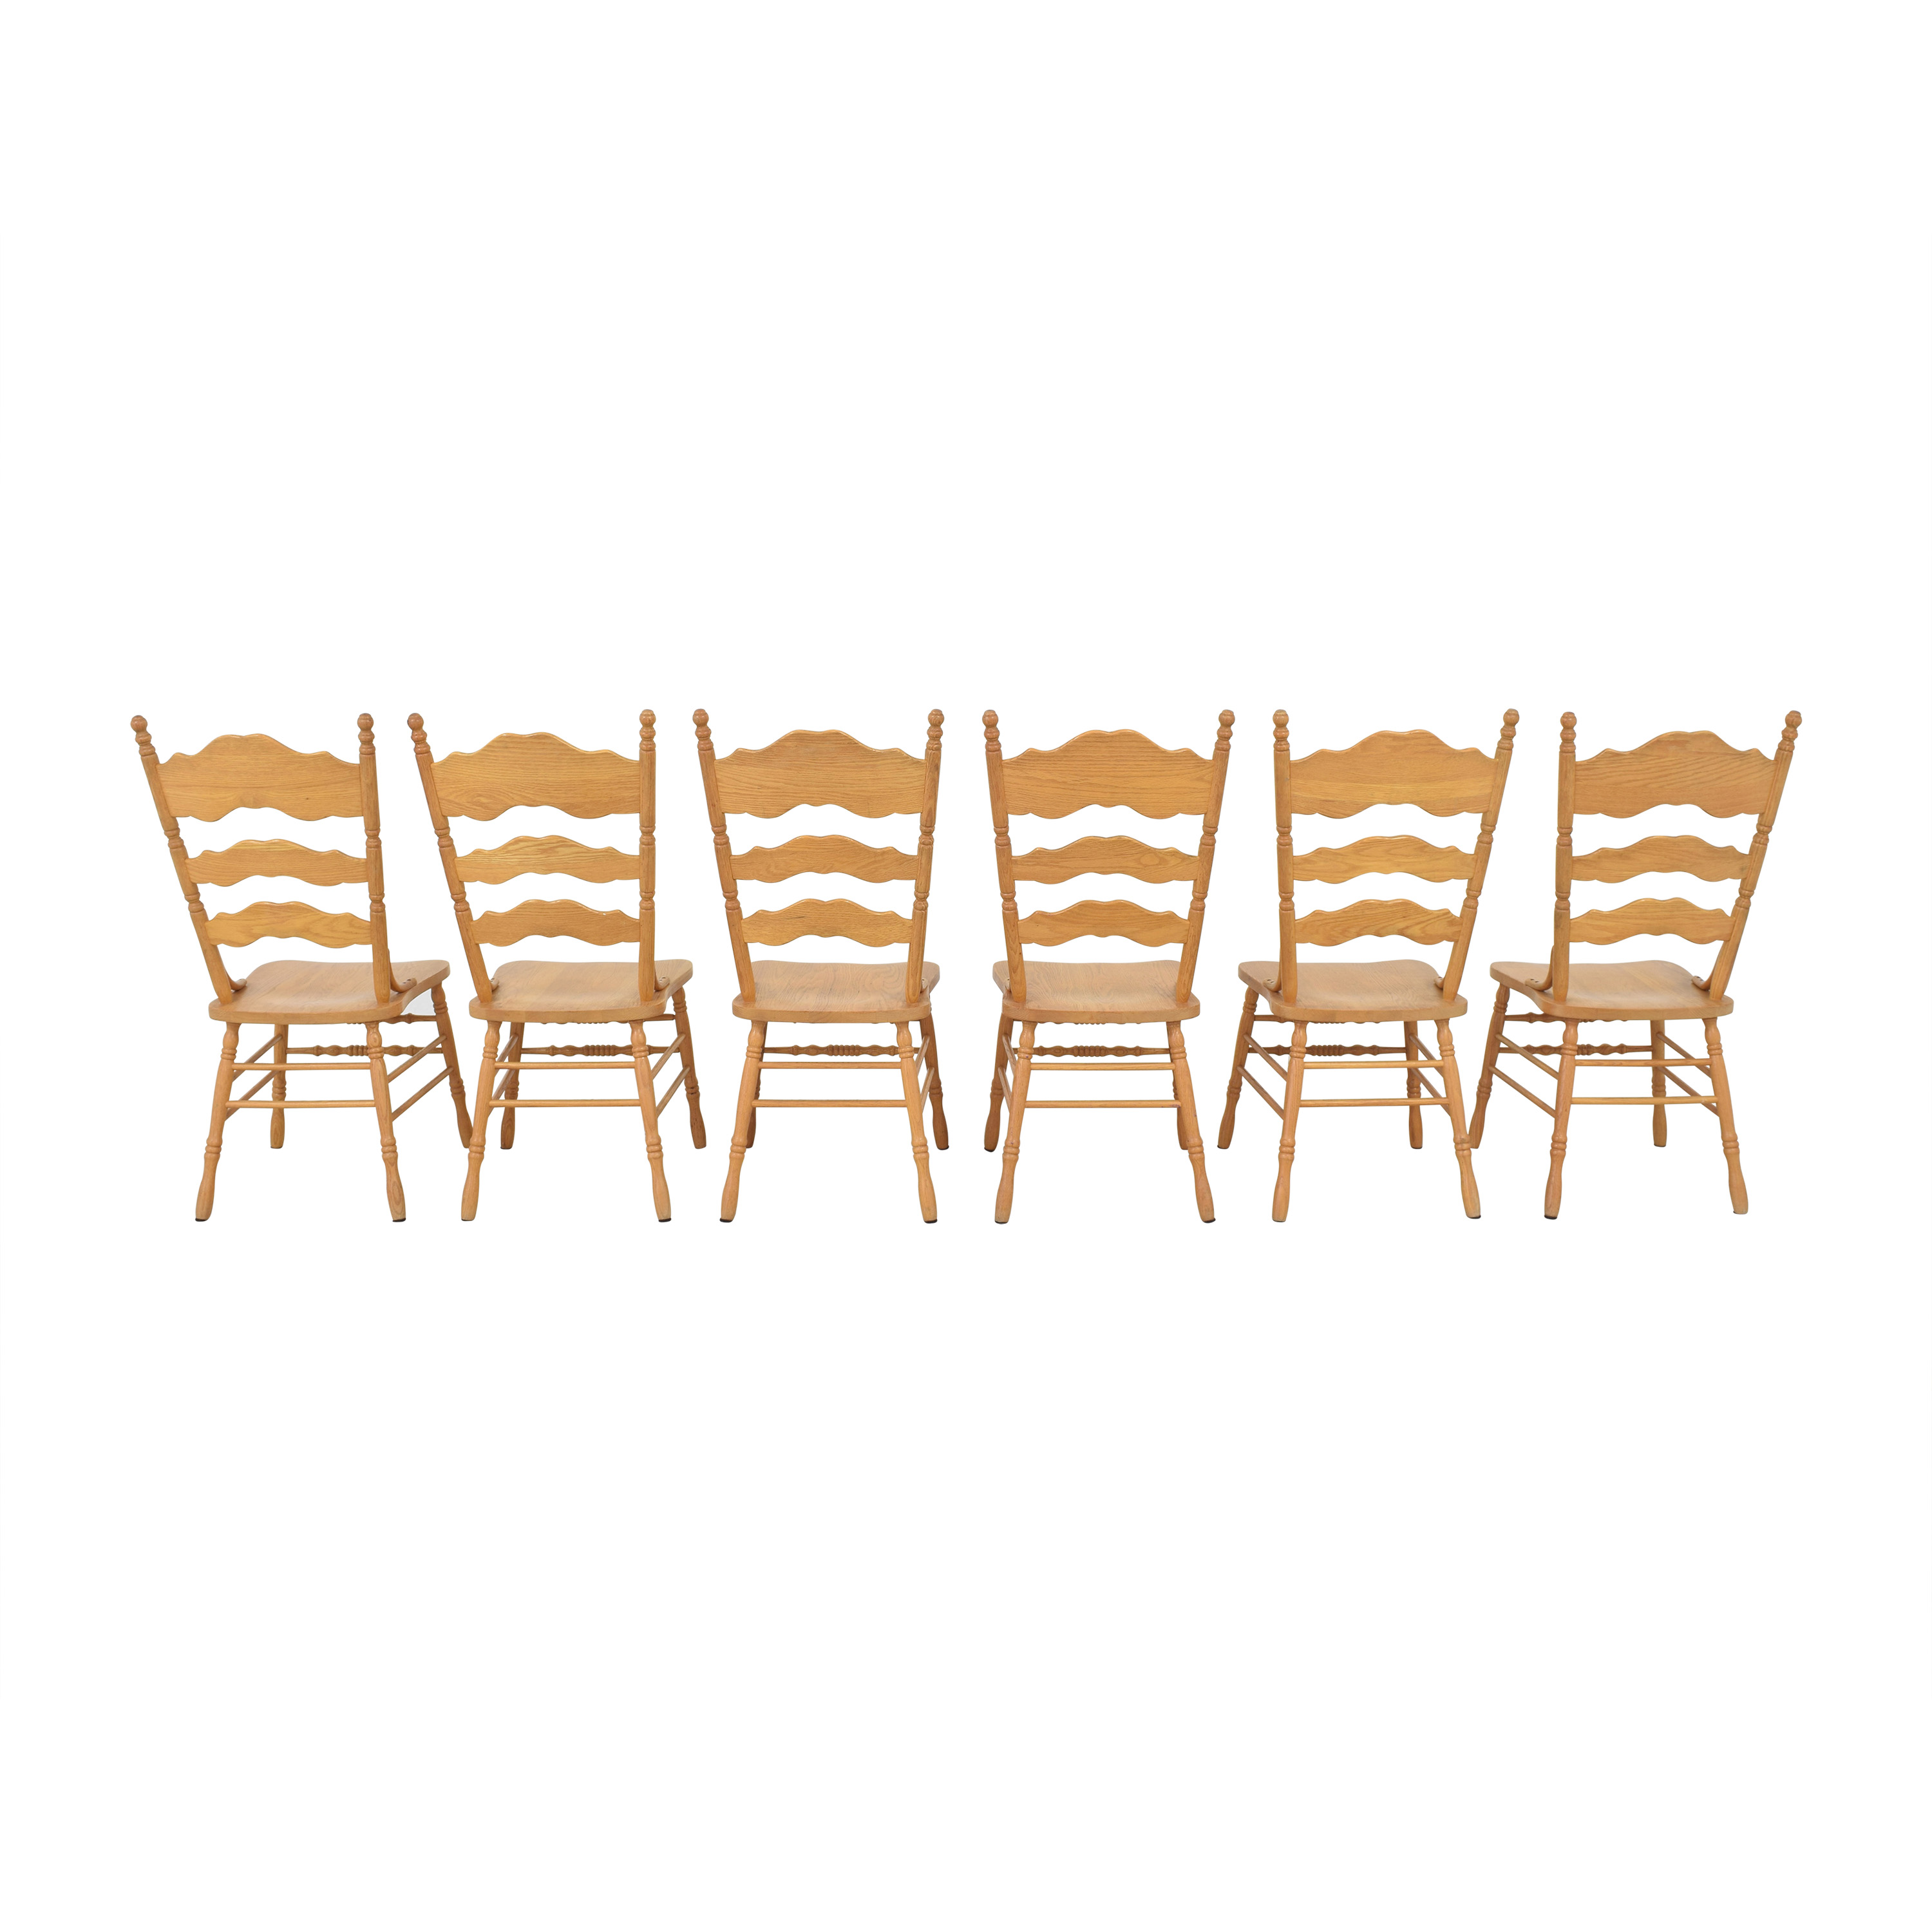 Shin-Lee Shin-Lee Ladder Back Dining Chairs discount